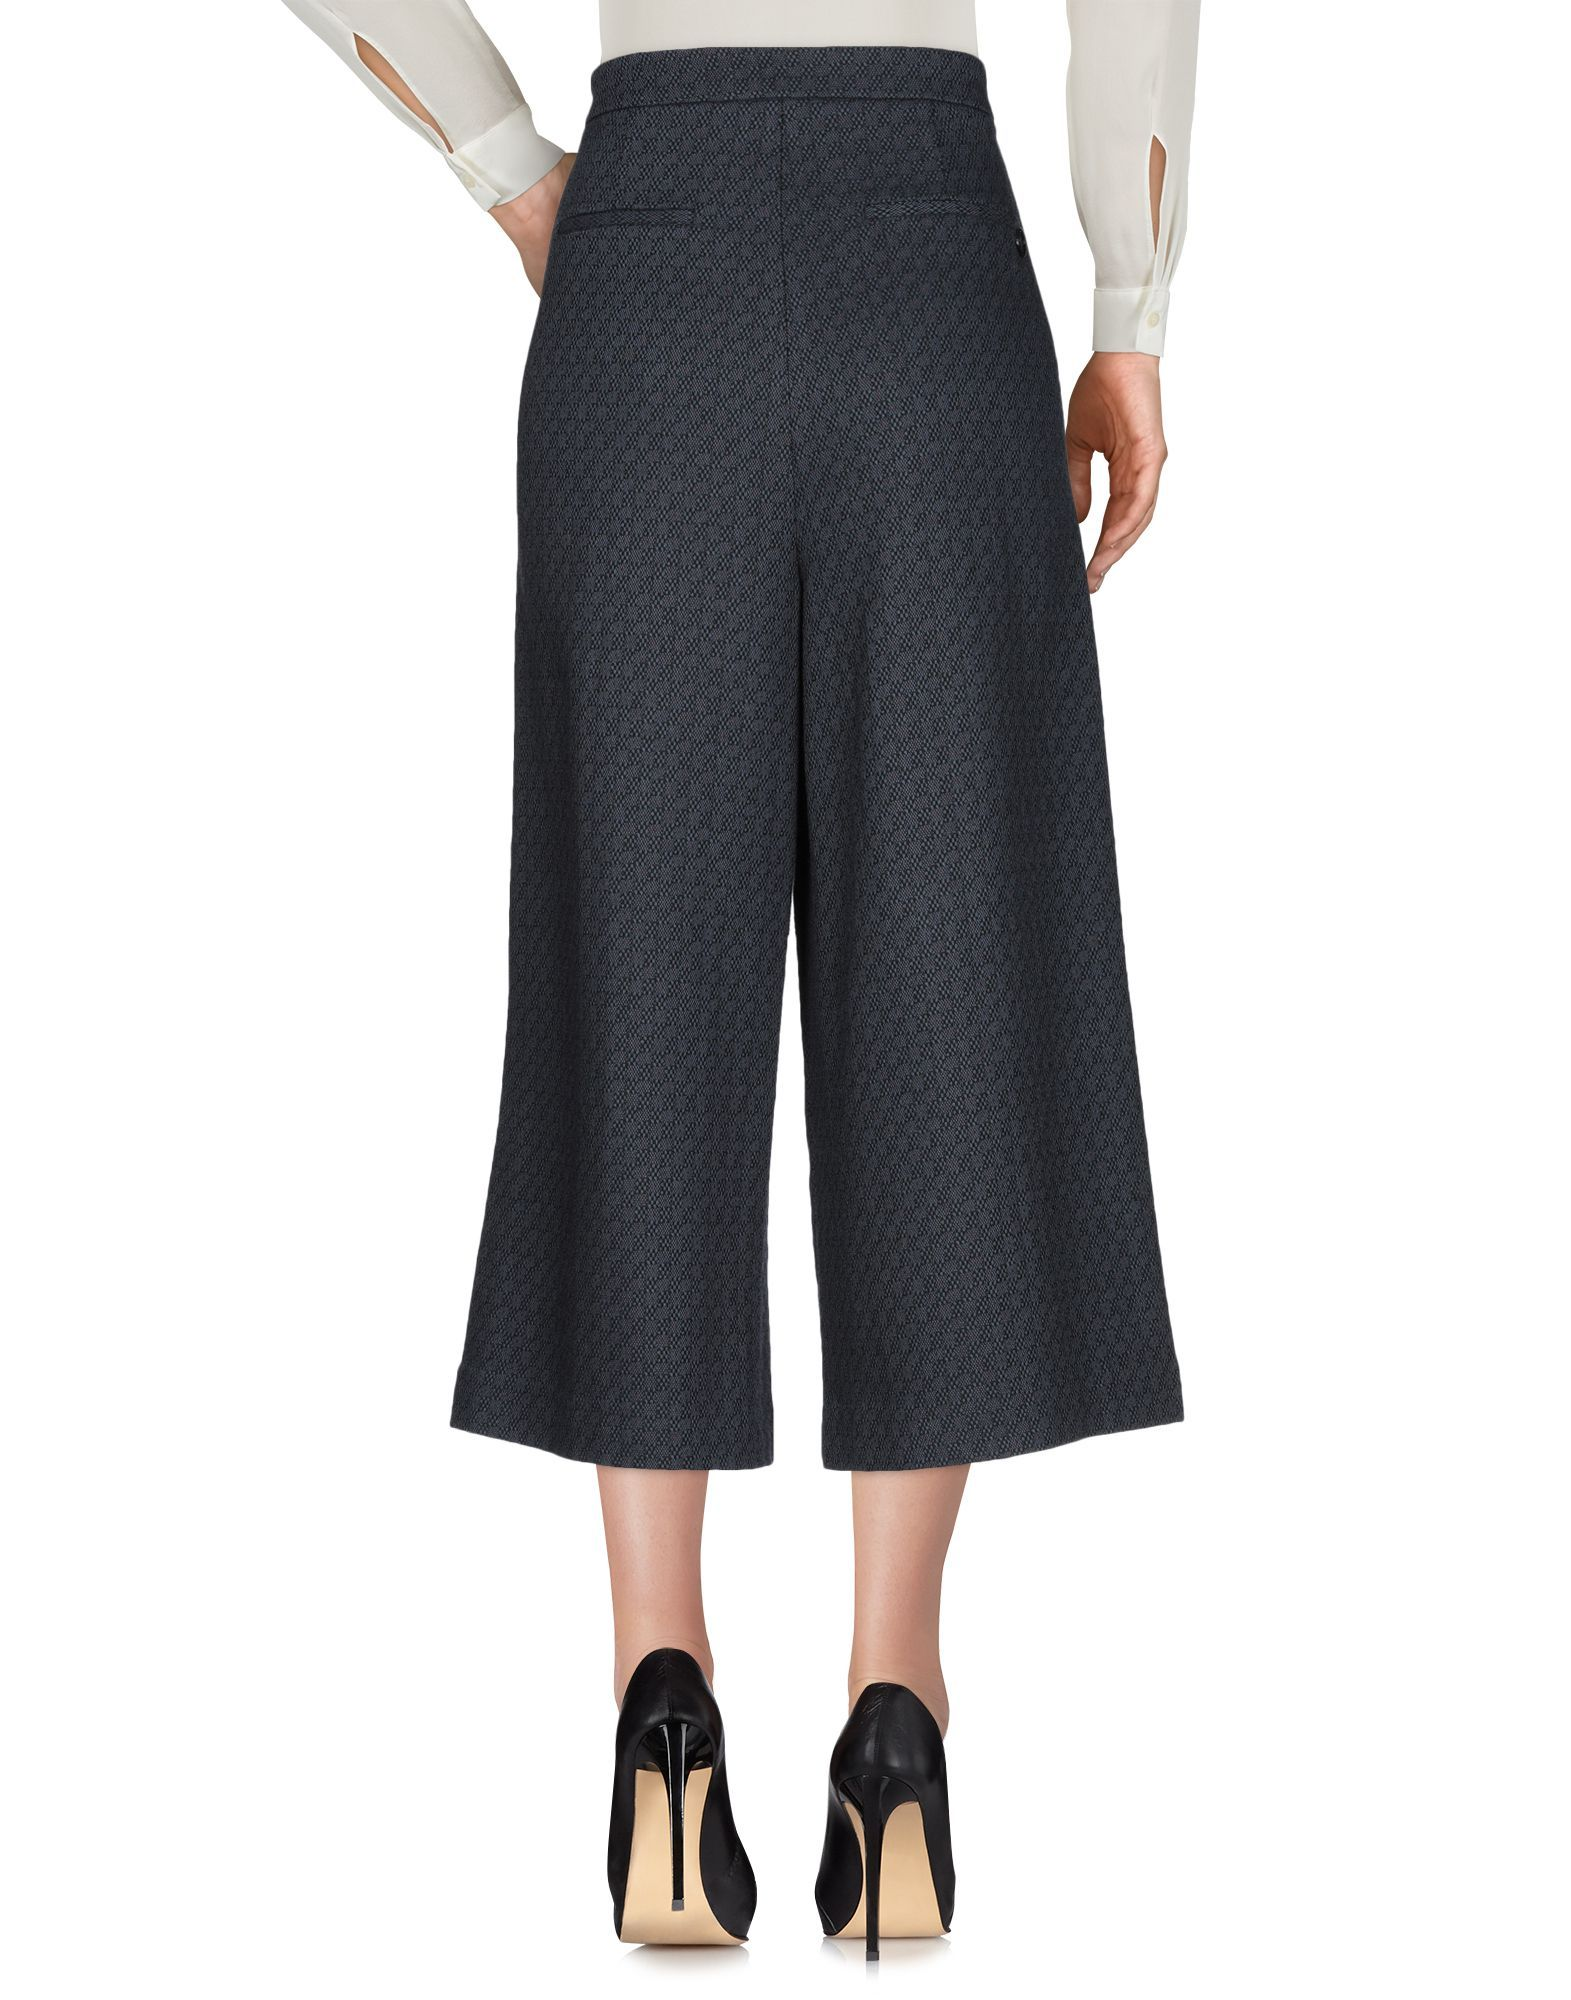 Manila Grace Grey Cotton High Waisted Wide Leg Cropped Trousers